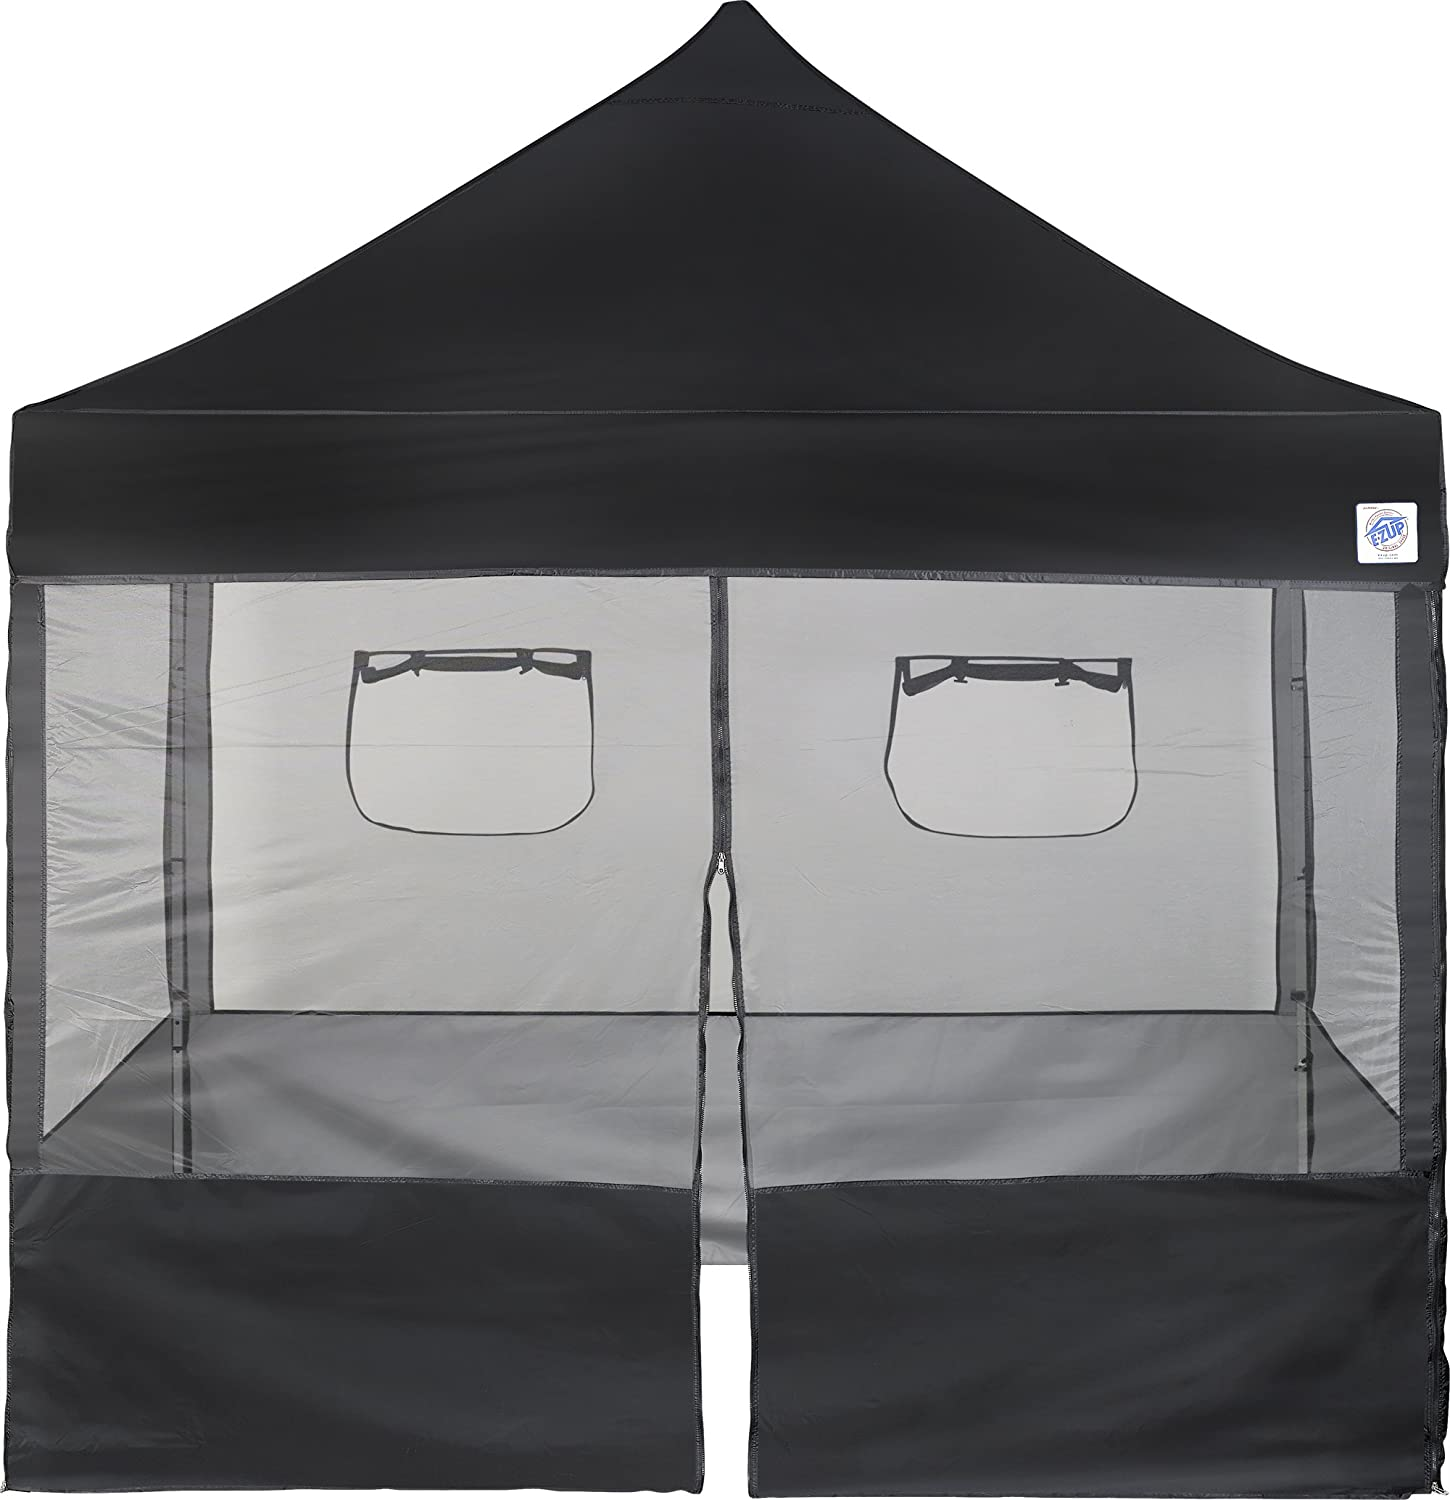 Amazon.com E-Z UP Food Booth Sidewall Package 10 by 10u0027 Black Garden u0026 Outdoor  sc 1 st  Amazon.com & Amazon.com: E-Z UP Food Booth Sidewall Package 10 by 10u0027 Black ...